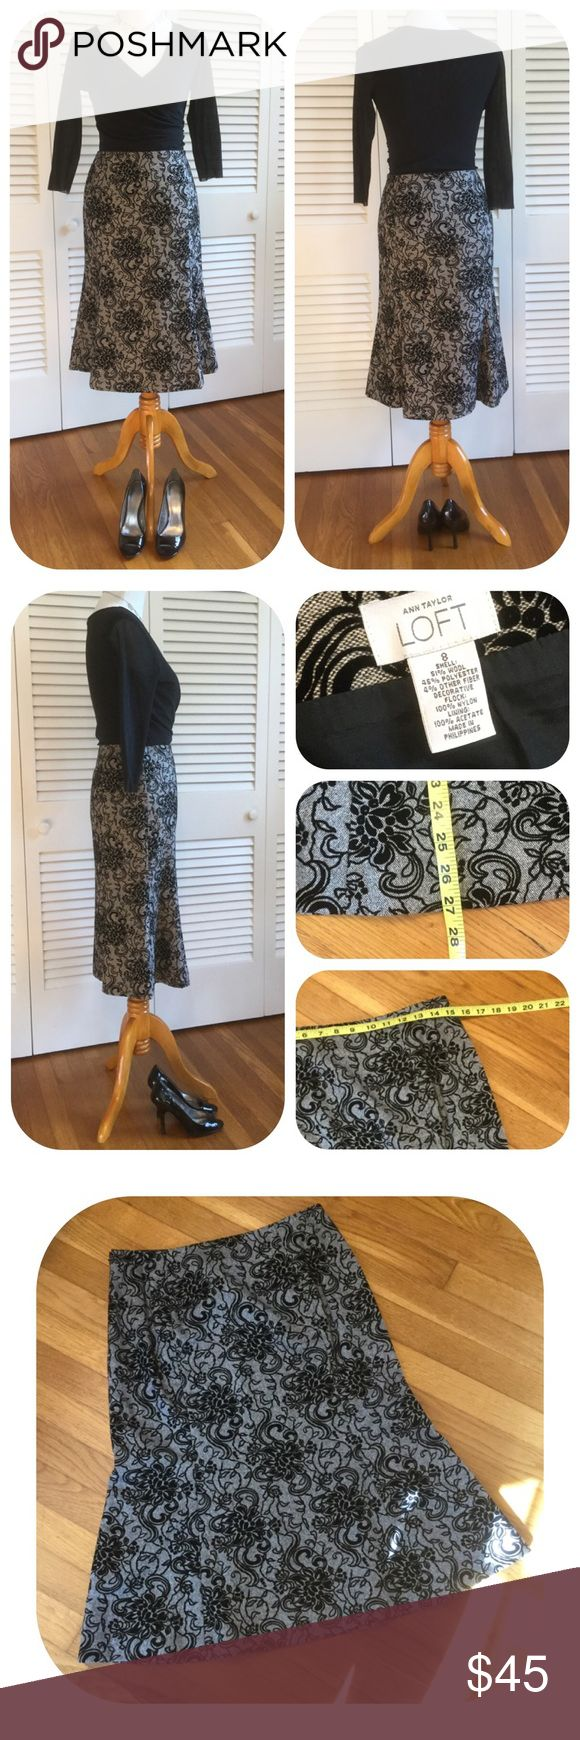 """LOFT Black & Grey Wool Skirt with Velvet Flocking LOFT Black & Grey Wool Skirt with Velvet Flocking. Trumpet silhouette. Size 8. Measures approximately 15"""" across waist, 27"""" long. Shown styled with Swear Pea Wrap Front Mesh Shirt, Nine West Peep Toe Pumps and Silver Disc Necklace, all for sale in My Closet. Bundle 3 items and receive 20% asking price. LOFT Skirts"""